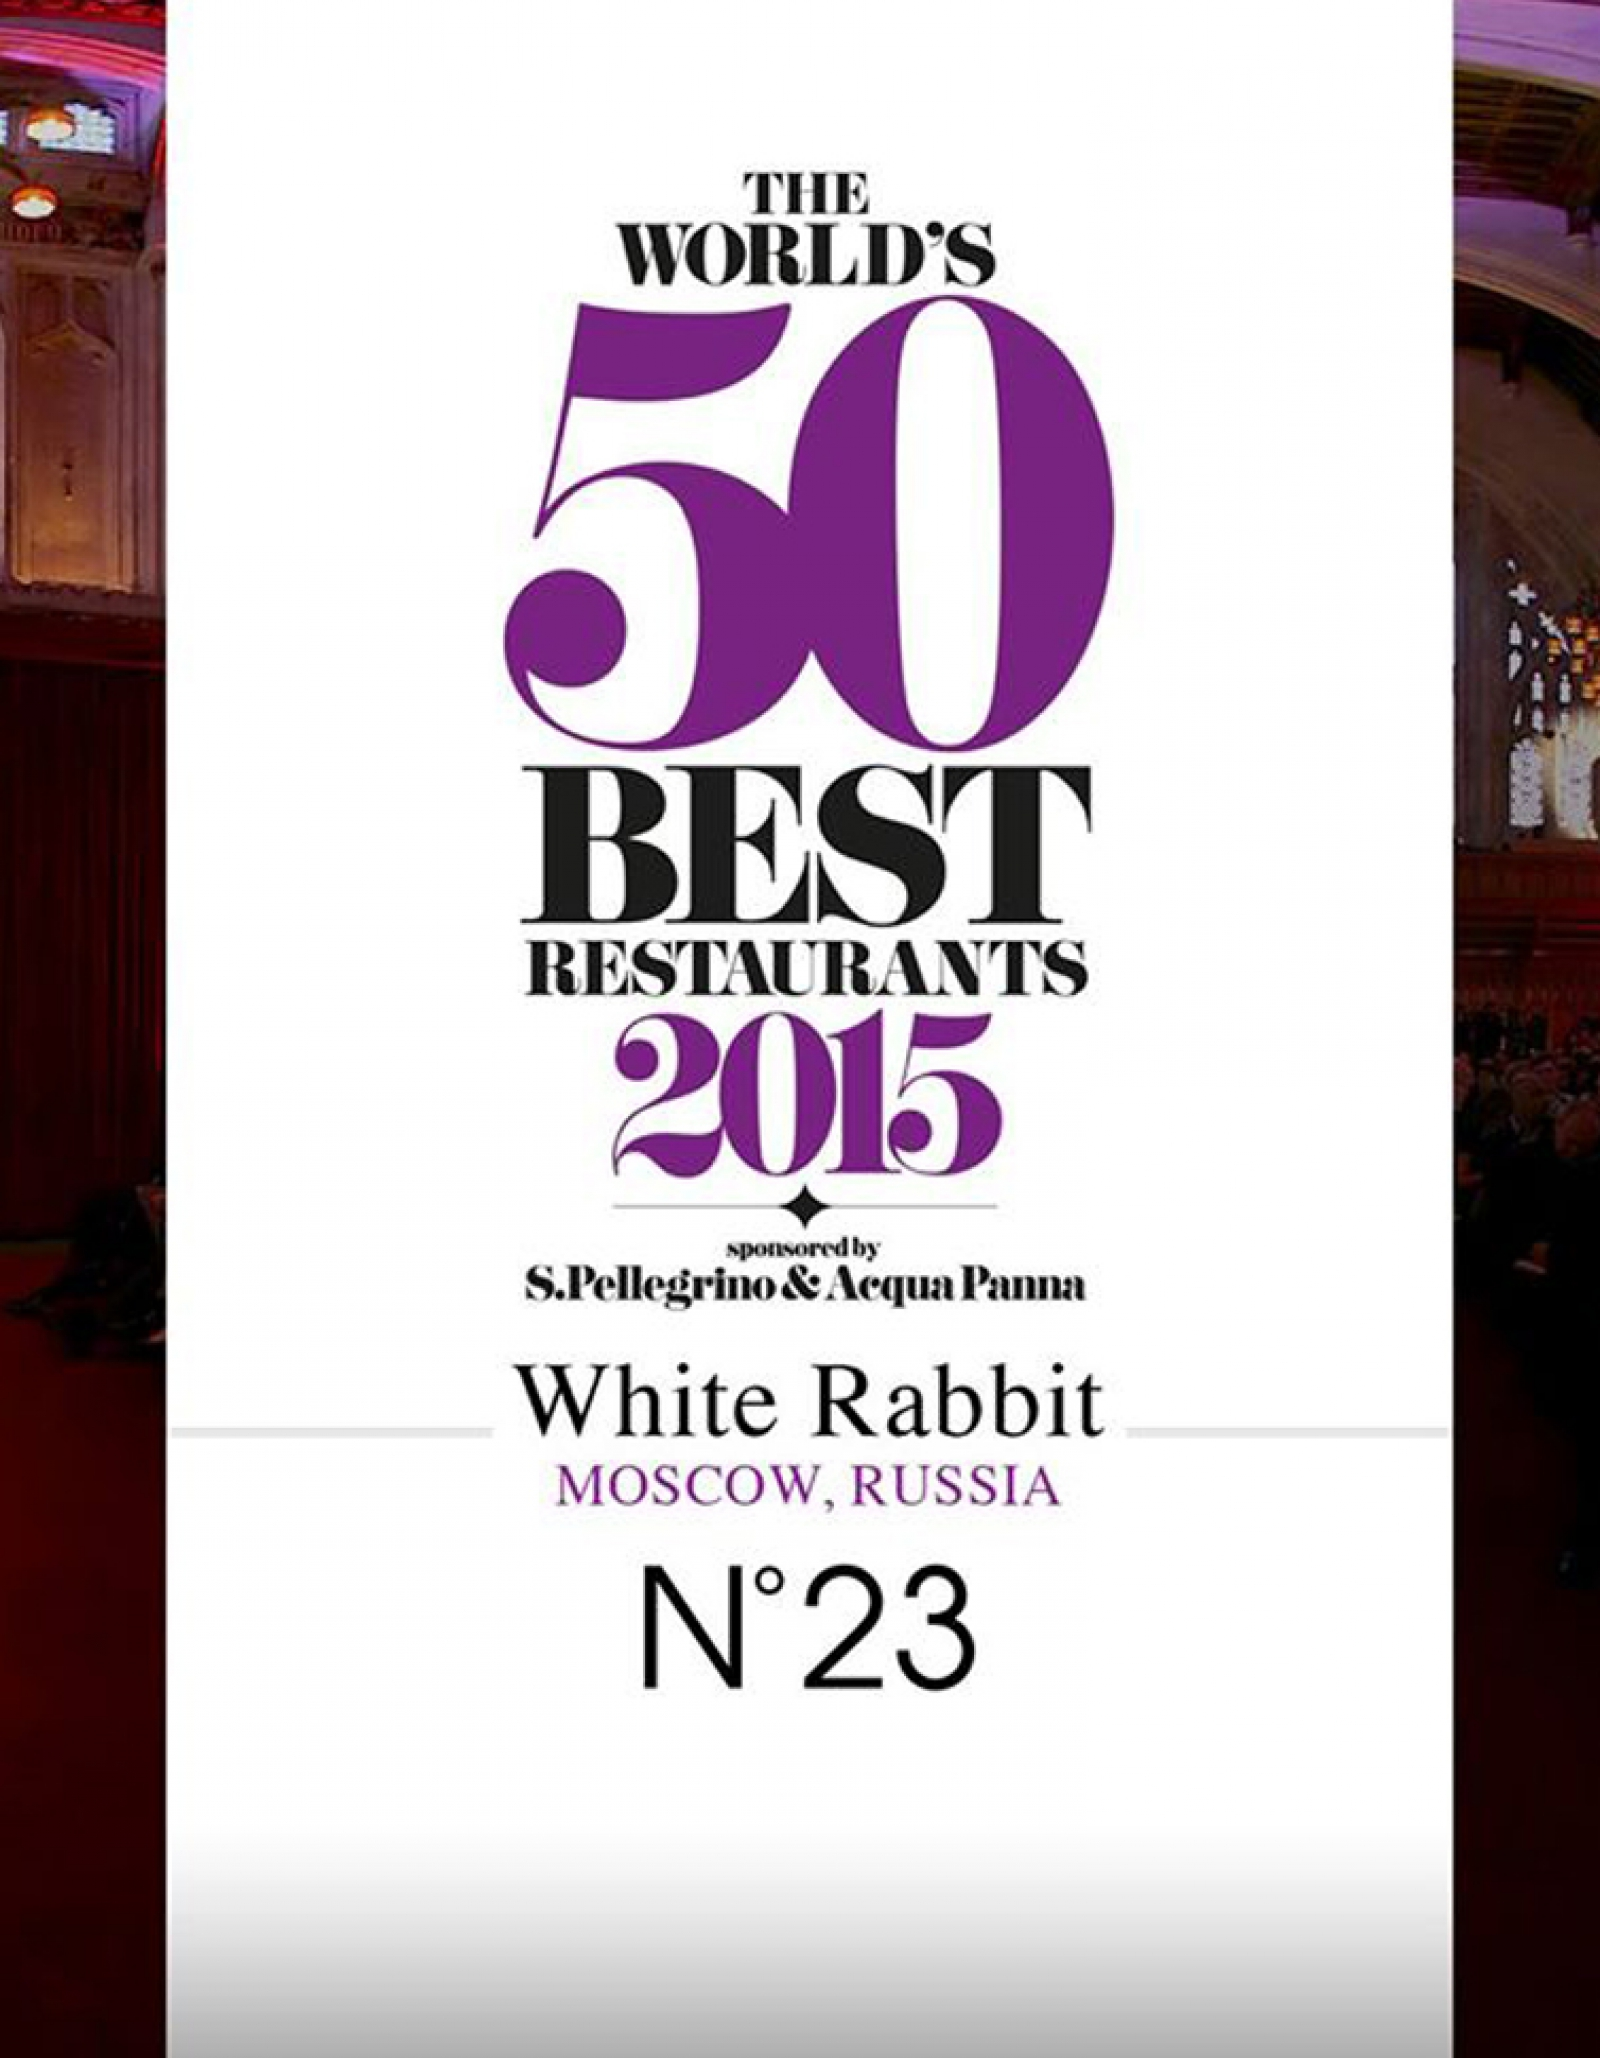 WHITE RABBIT RESTAURANT: NUMBER 23 IN THE WORLD'S 50 BEST RESTAURANTS!